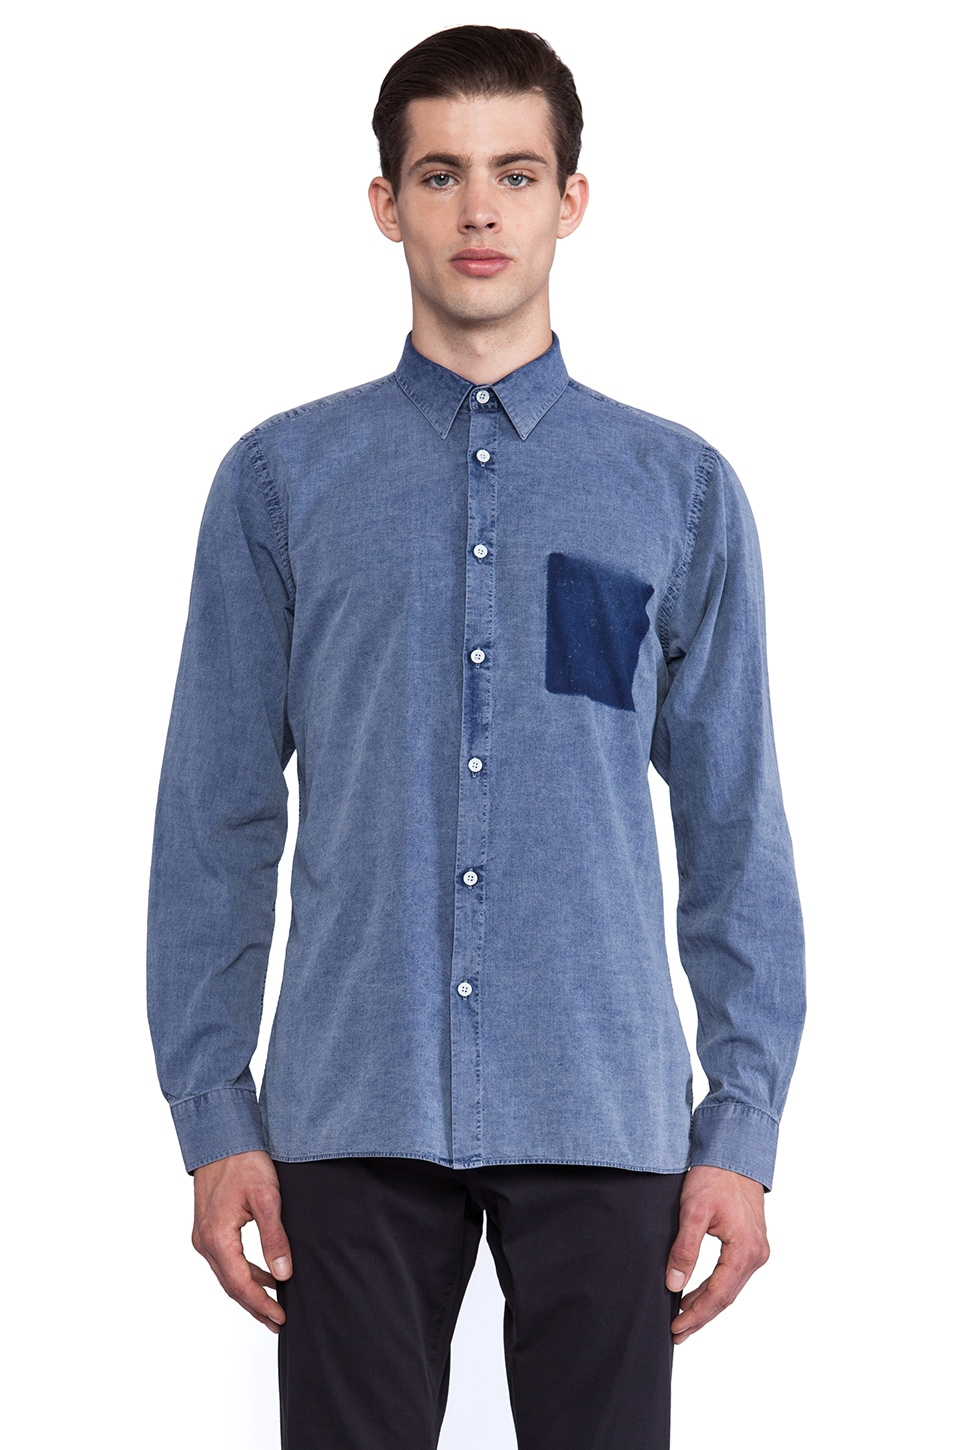 Hope Kagan Stitch Shirt in Indigo Bleach